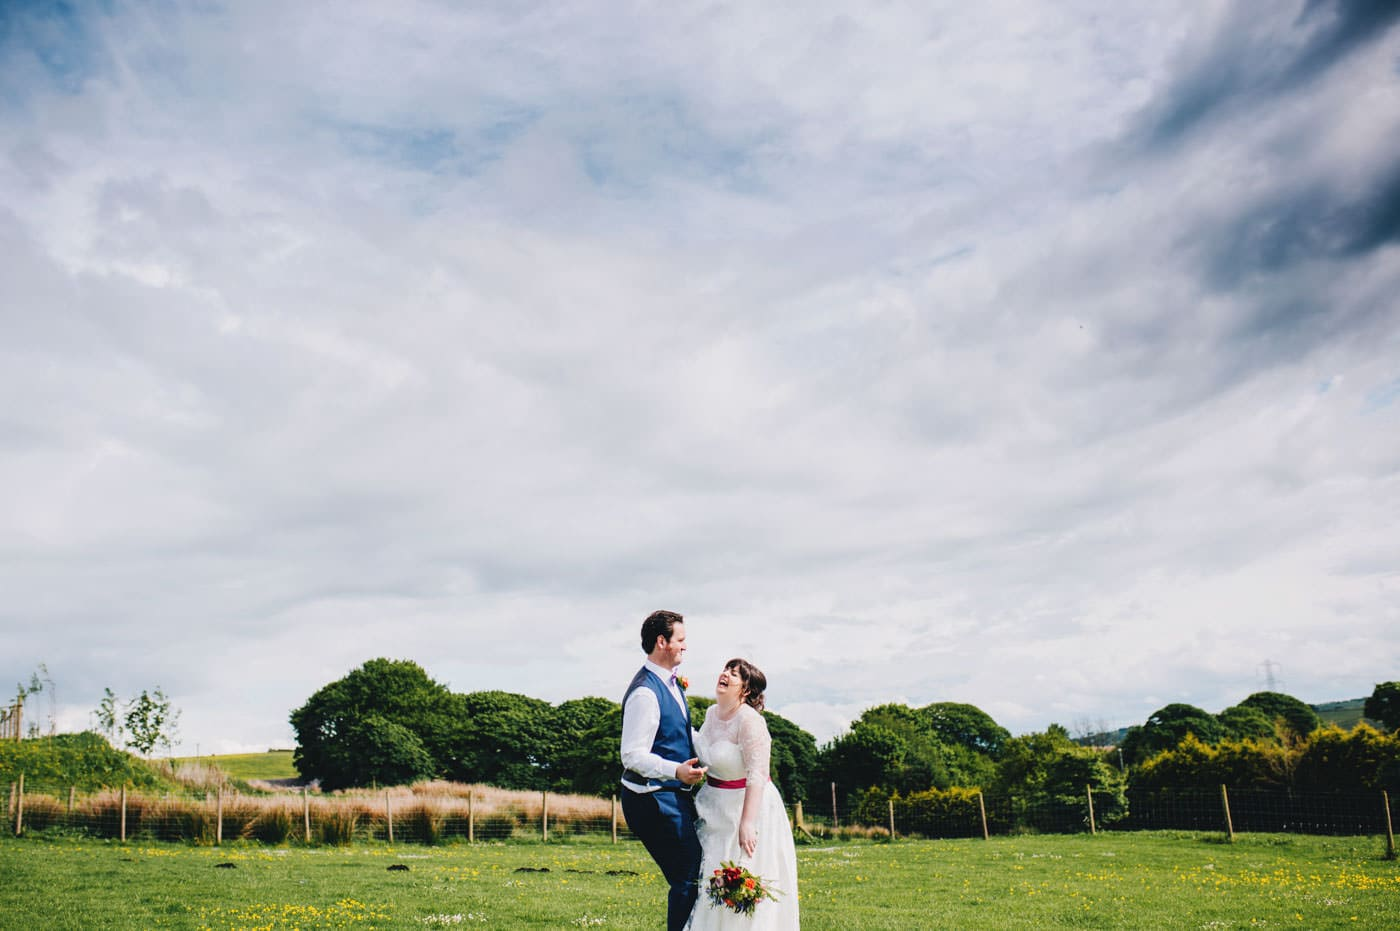 Fun wedding pictures - wellbeing farm